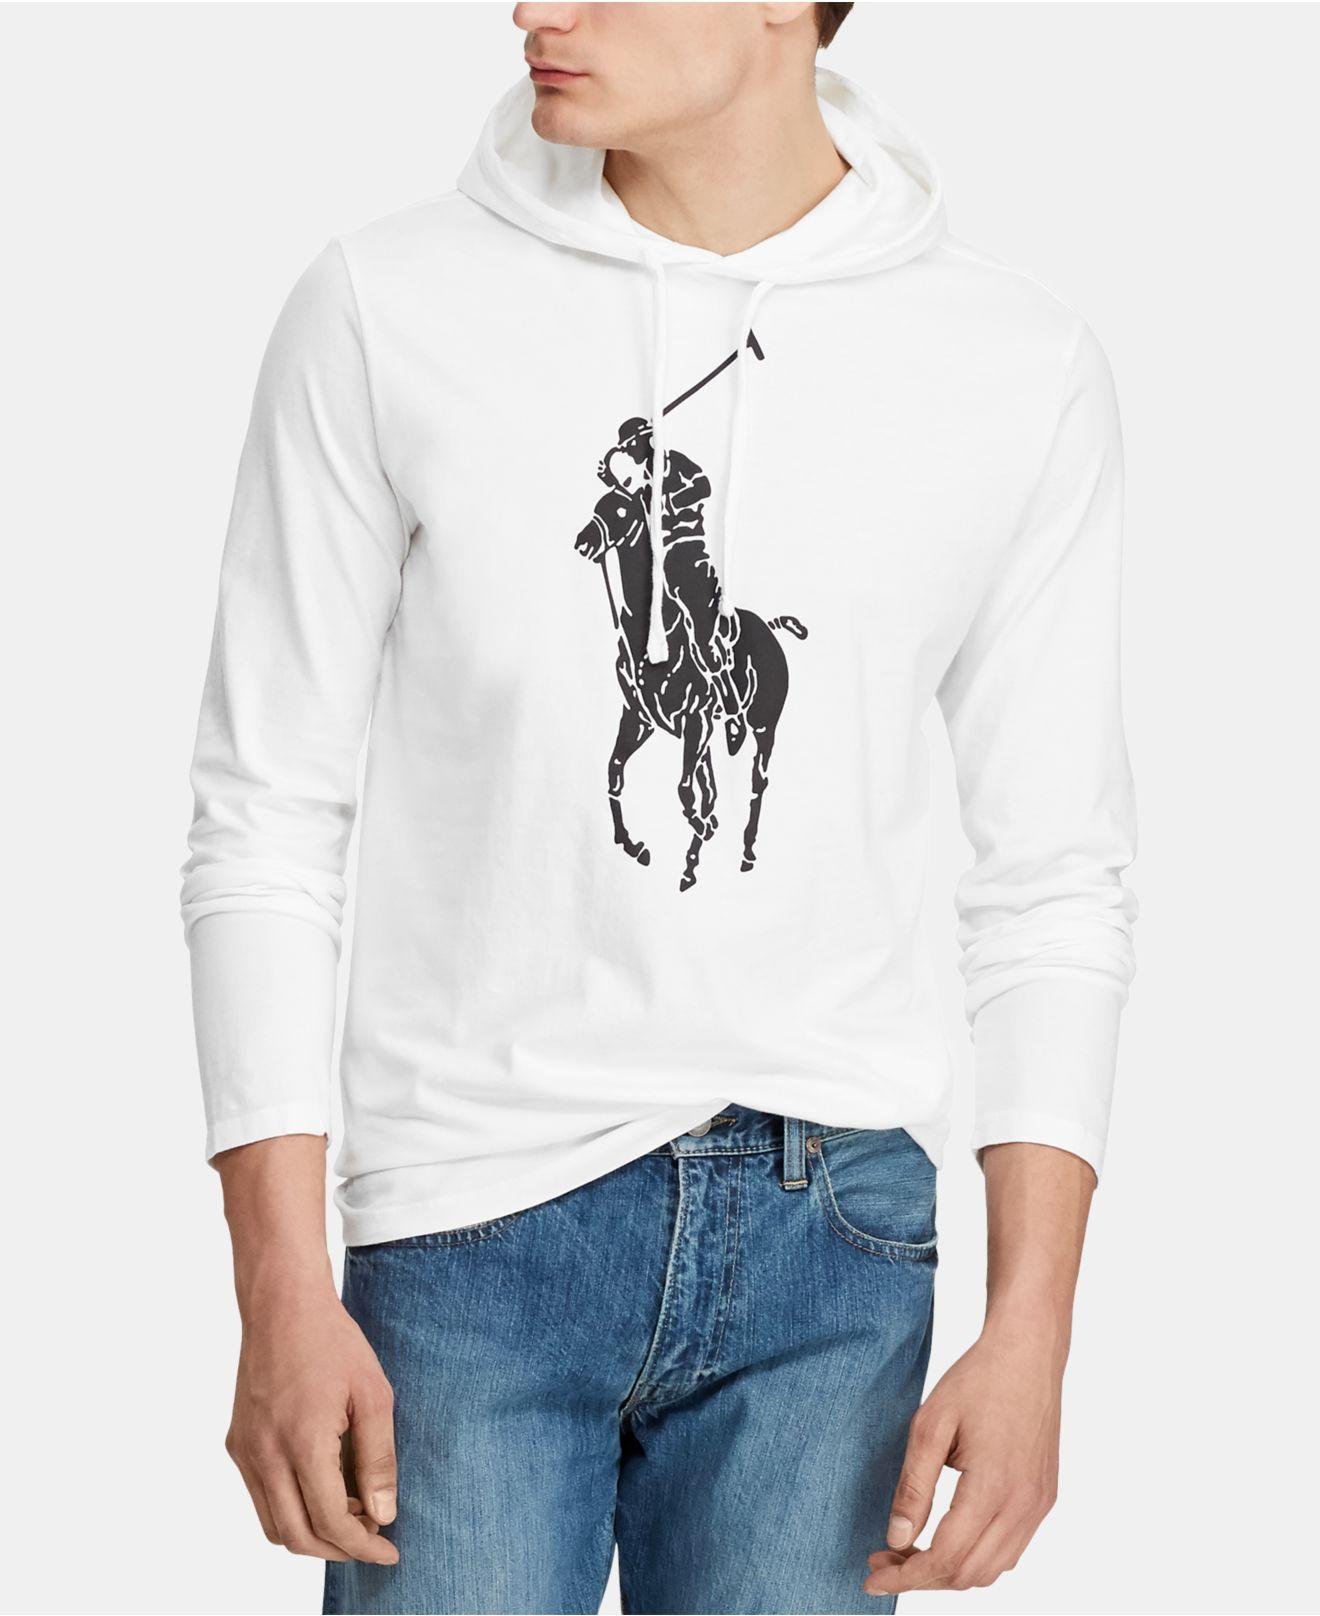 f41783d6 Polo Ralph Lauren Big Pony Jersey Hooded T-shirt in White for Men - Lyst